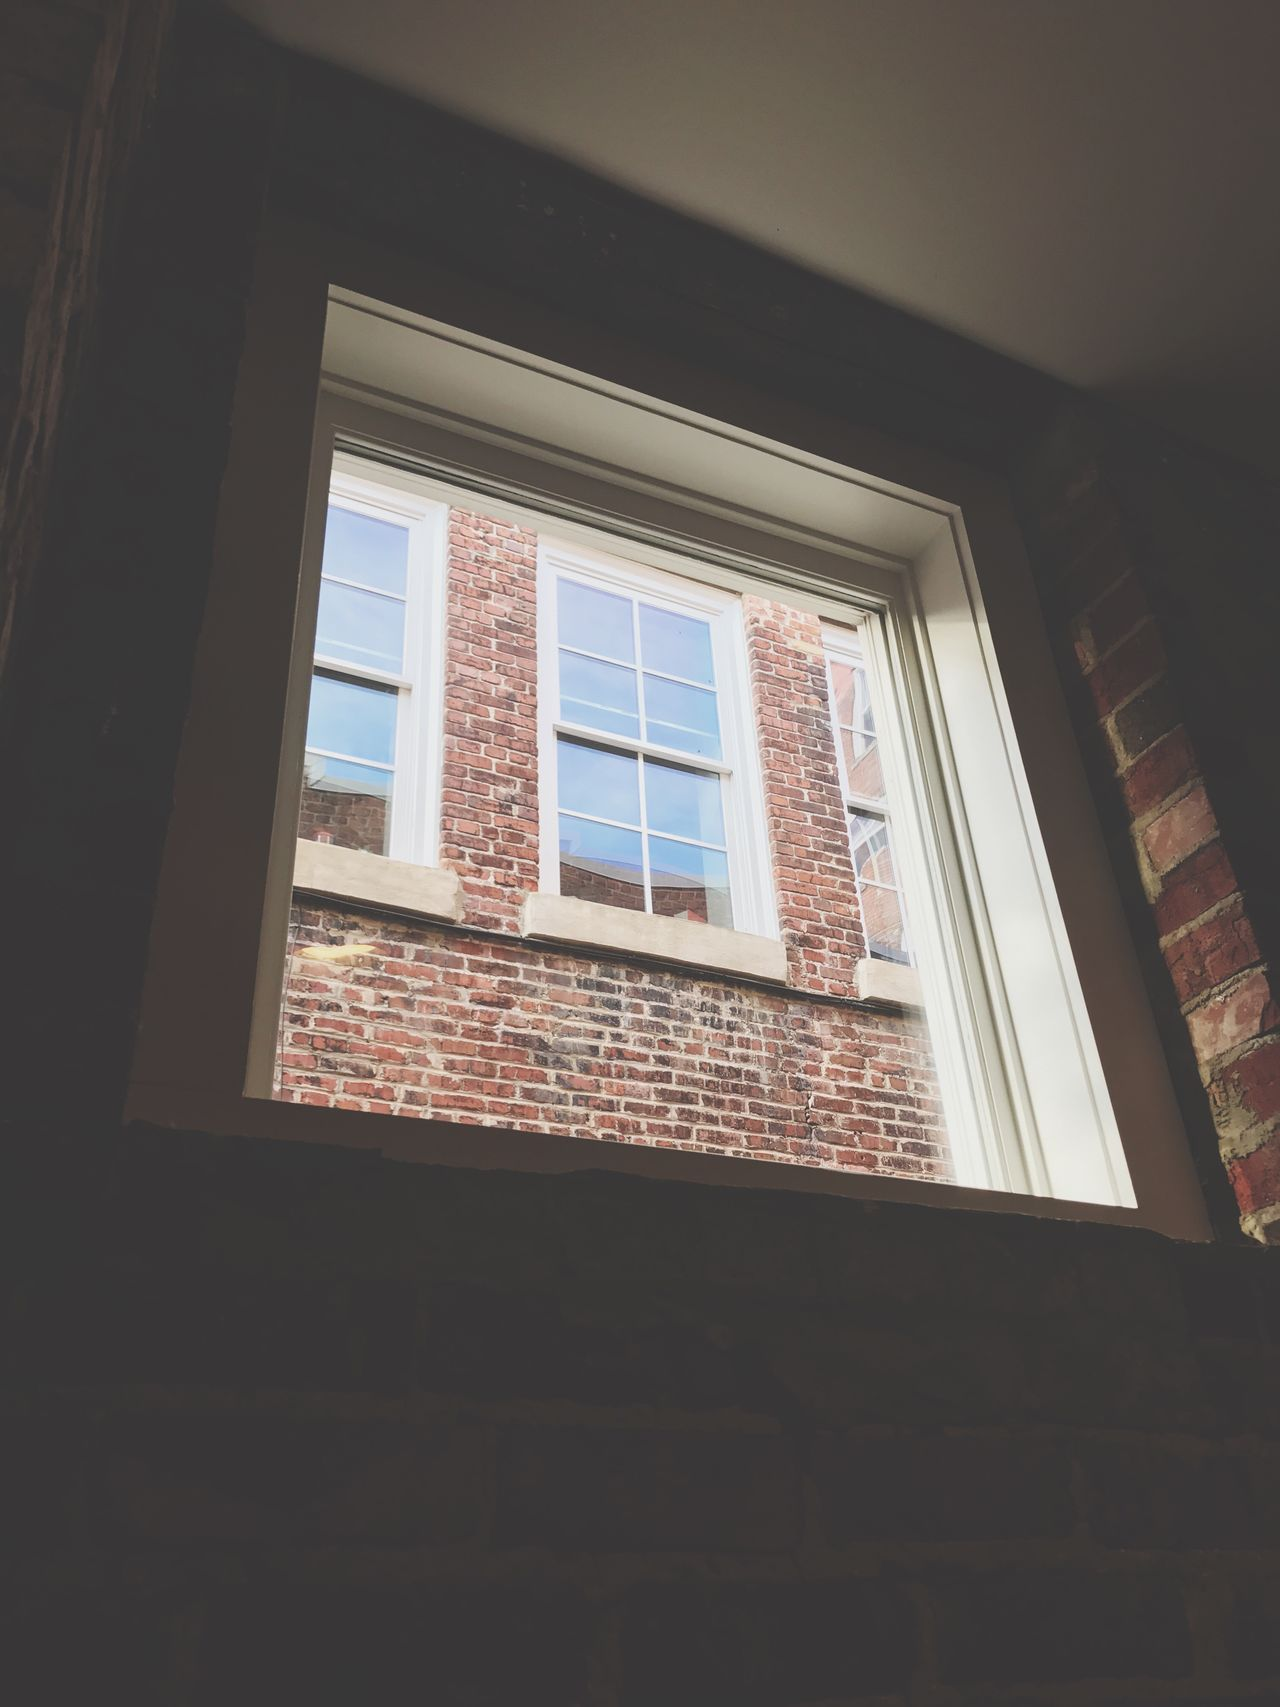 What windows through a window. Window Low Angle View Built Structure Indoors  Architecture No People Day Backgrounds Conceptual Concept